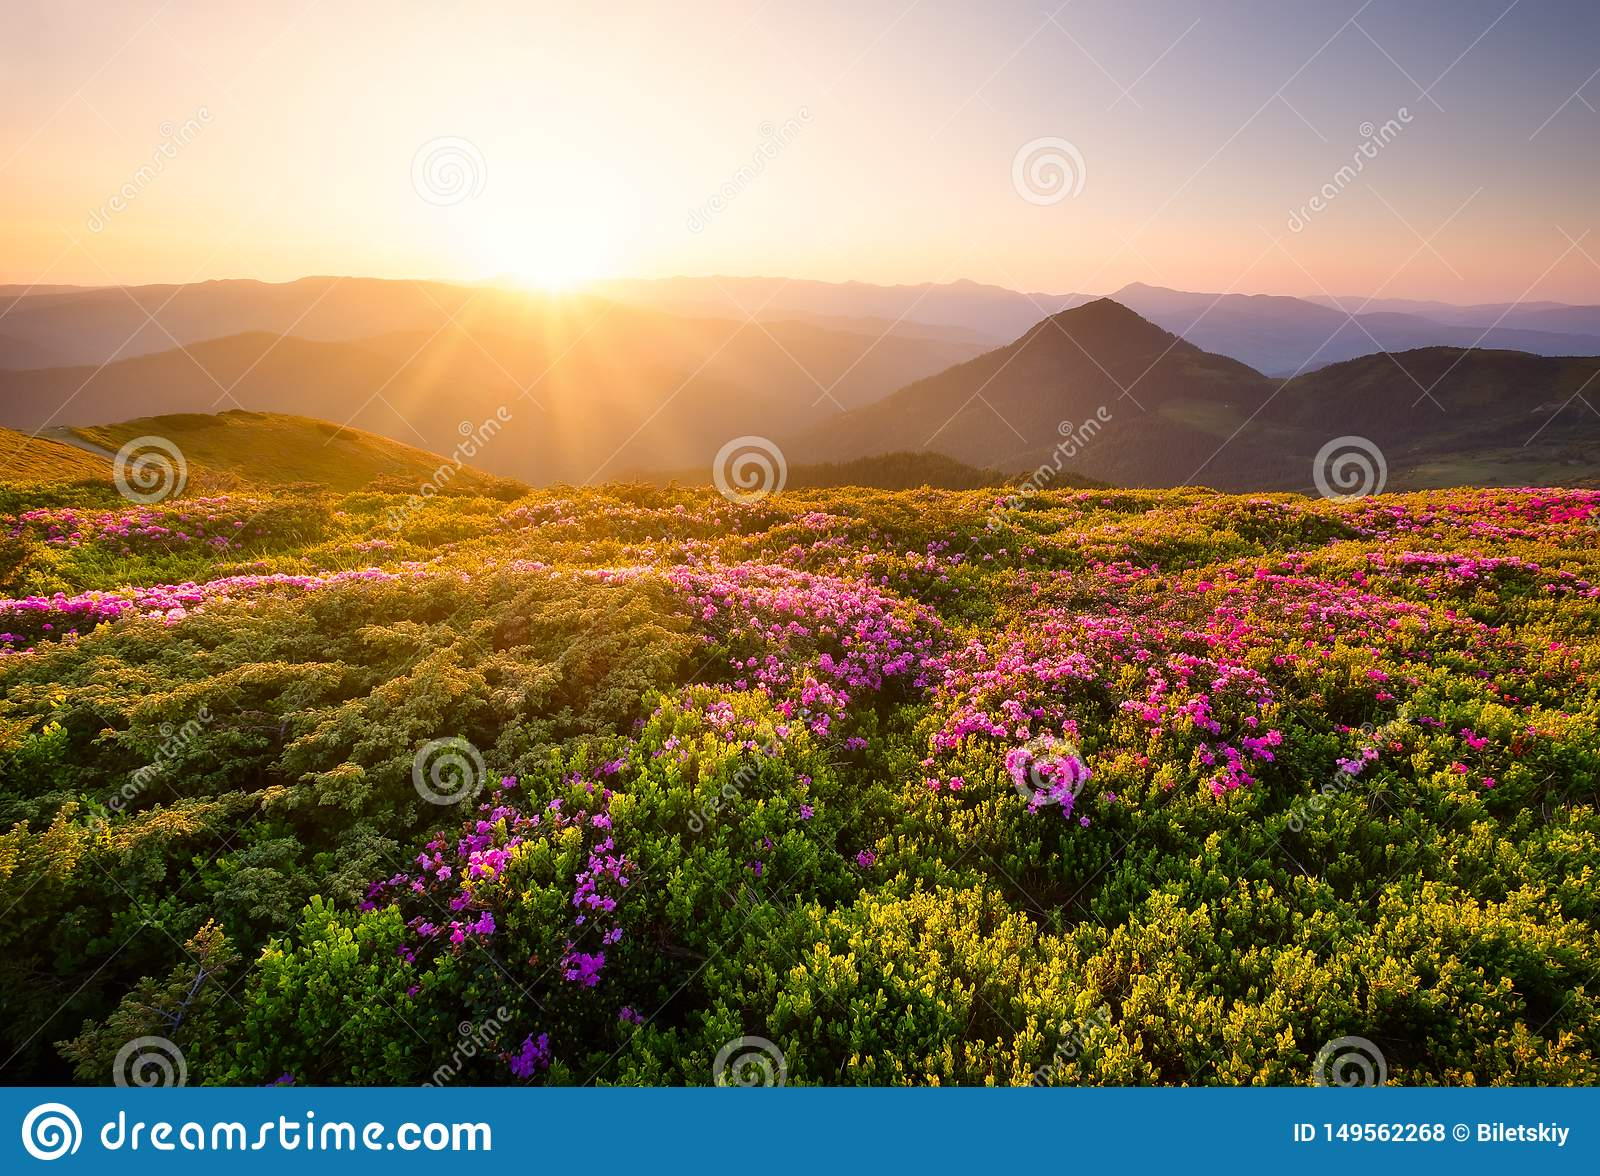 Mountains during flowers blossom and sunrise. Flowers on mountain hills. Natural landscape at the summer time. Mountains range.